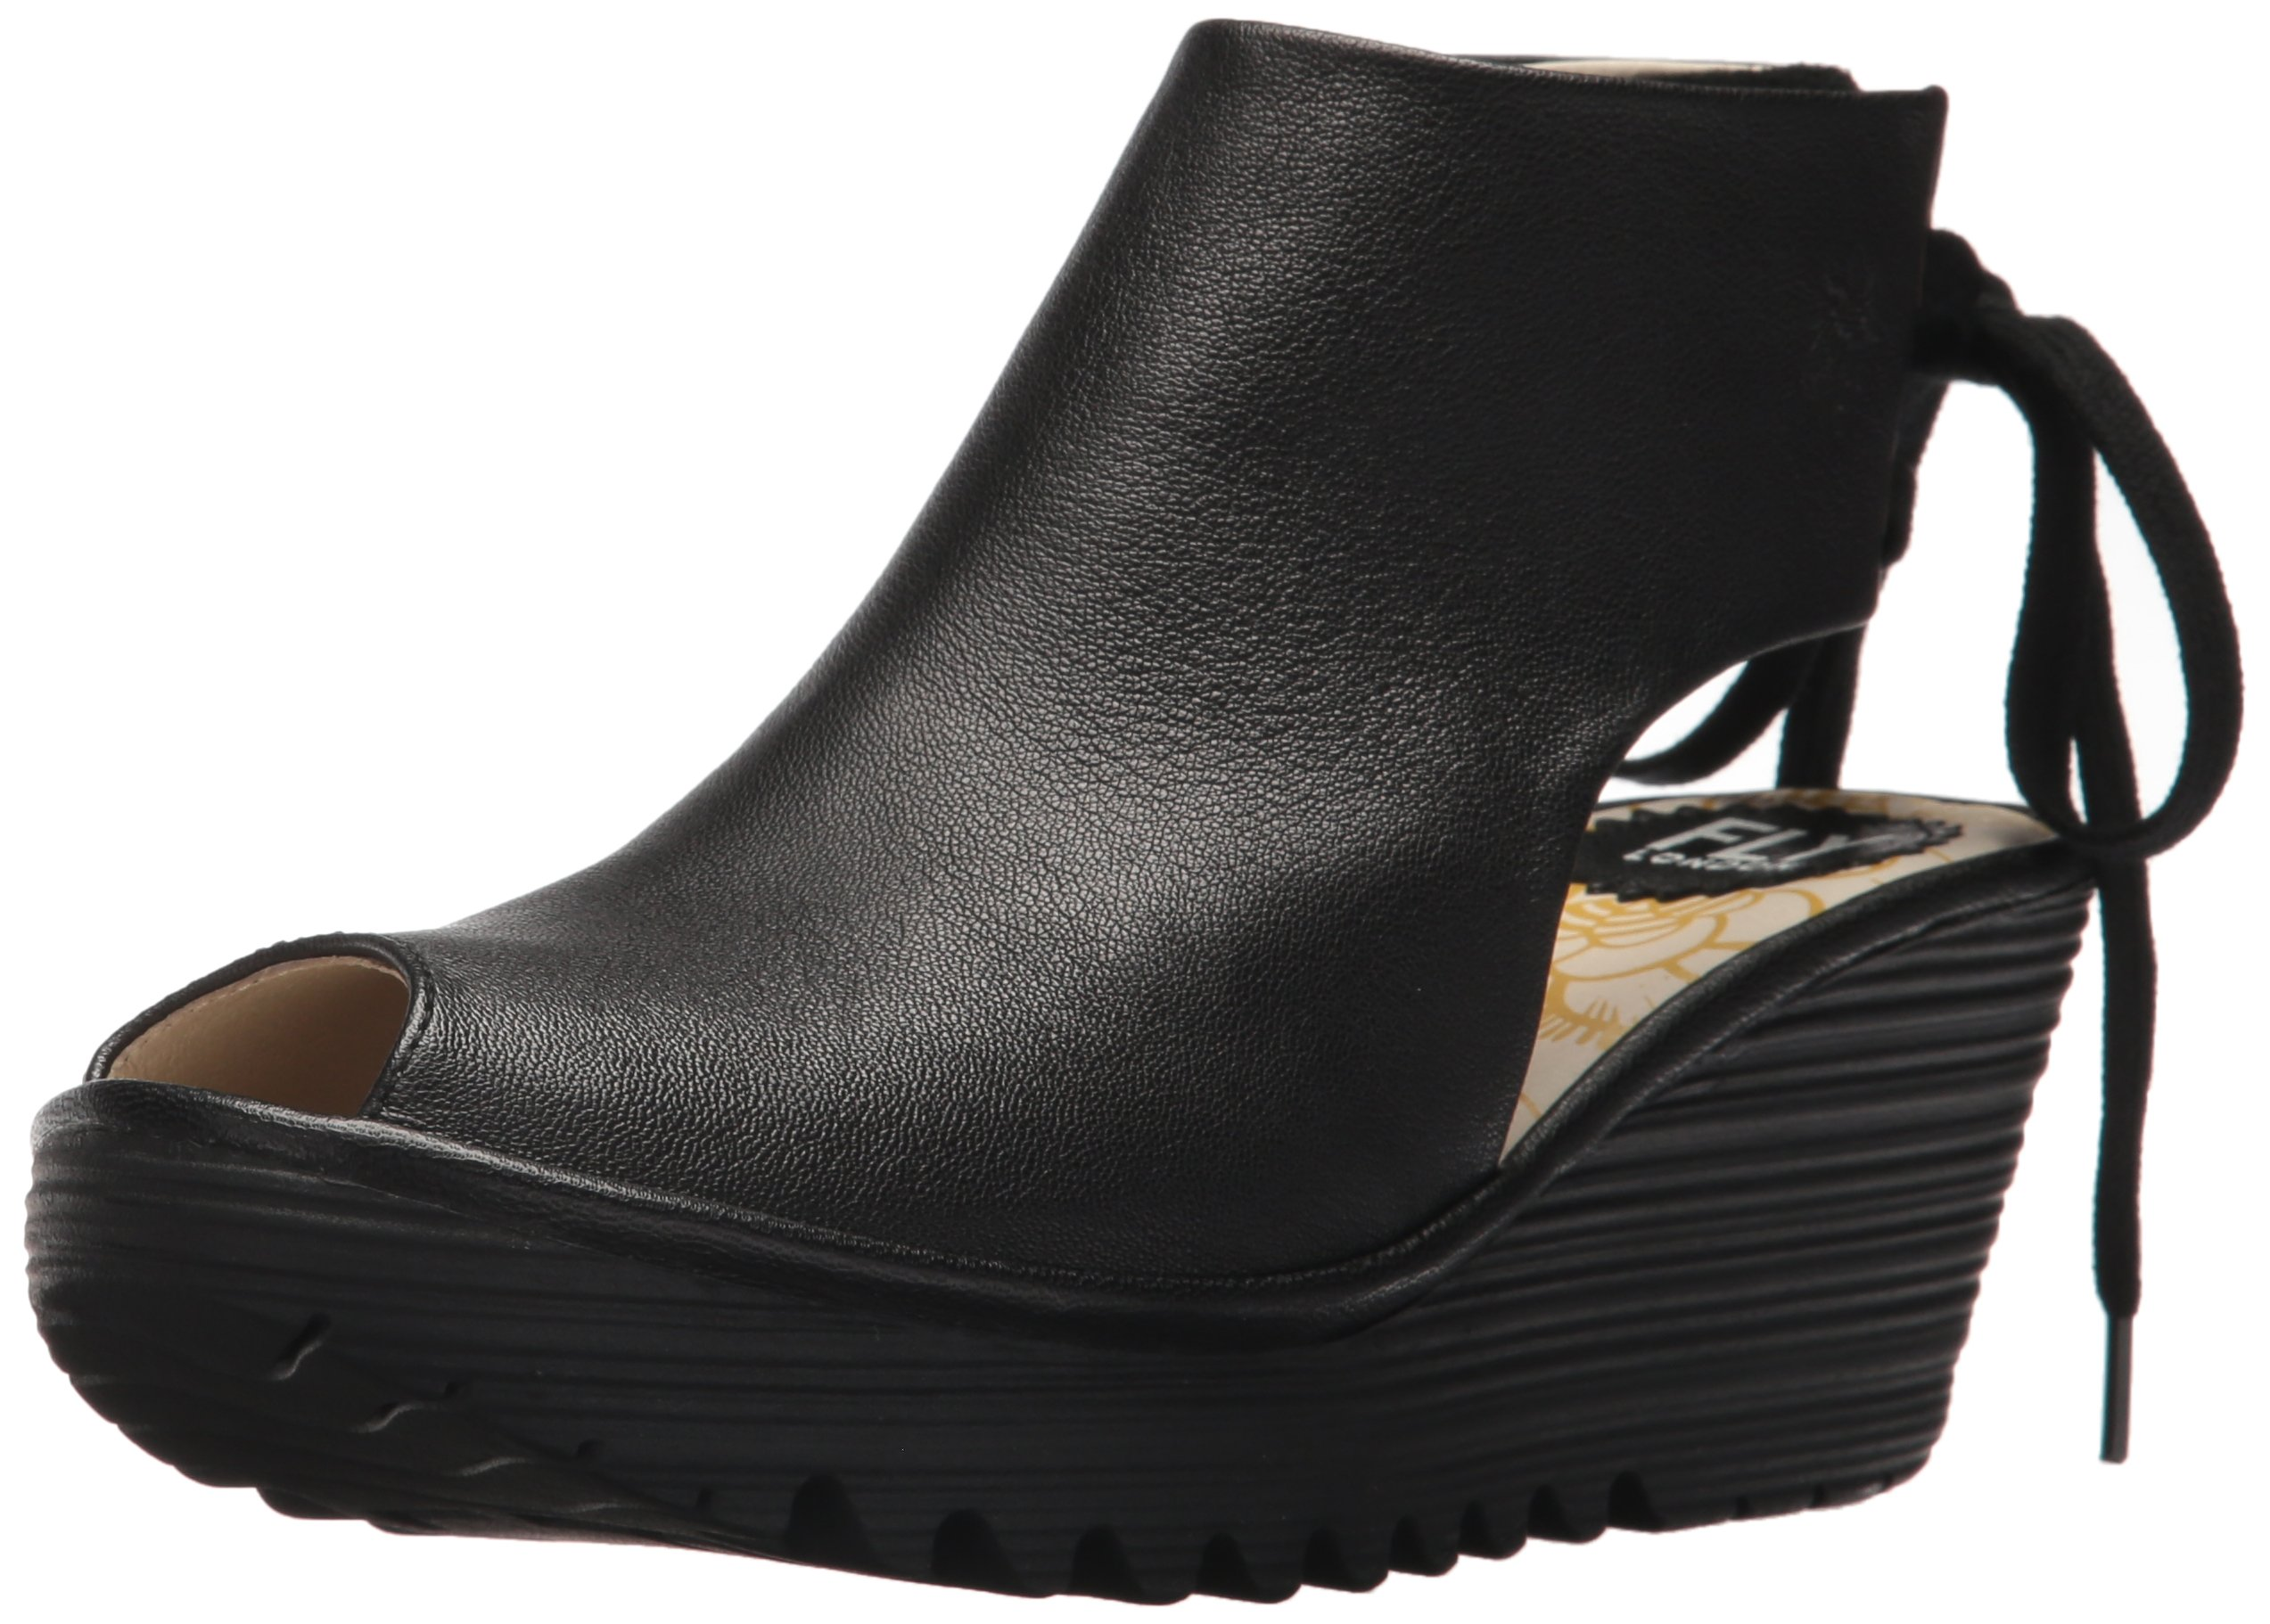 FLY London Women's Yuzu800fly Wedge Sandal, Black Mousse, 40 M EU (9-9.5 US)